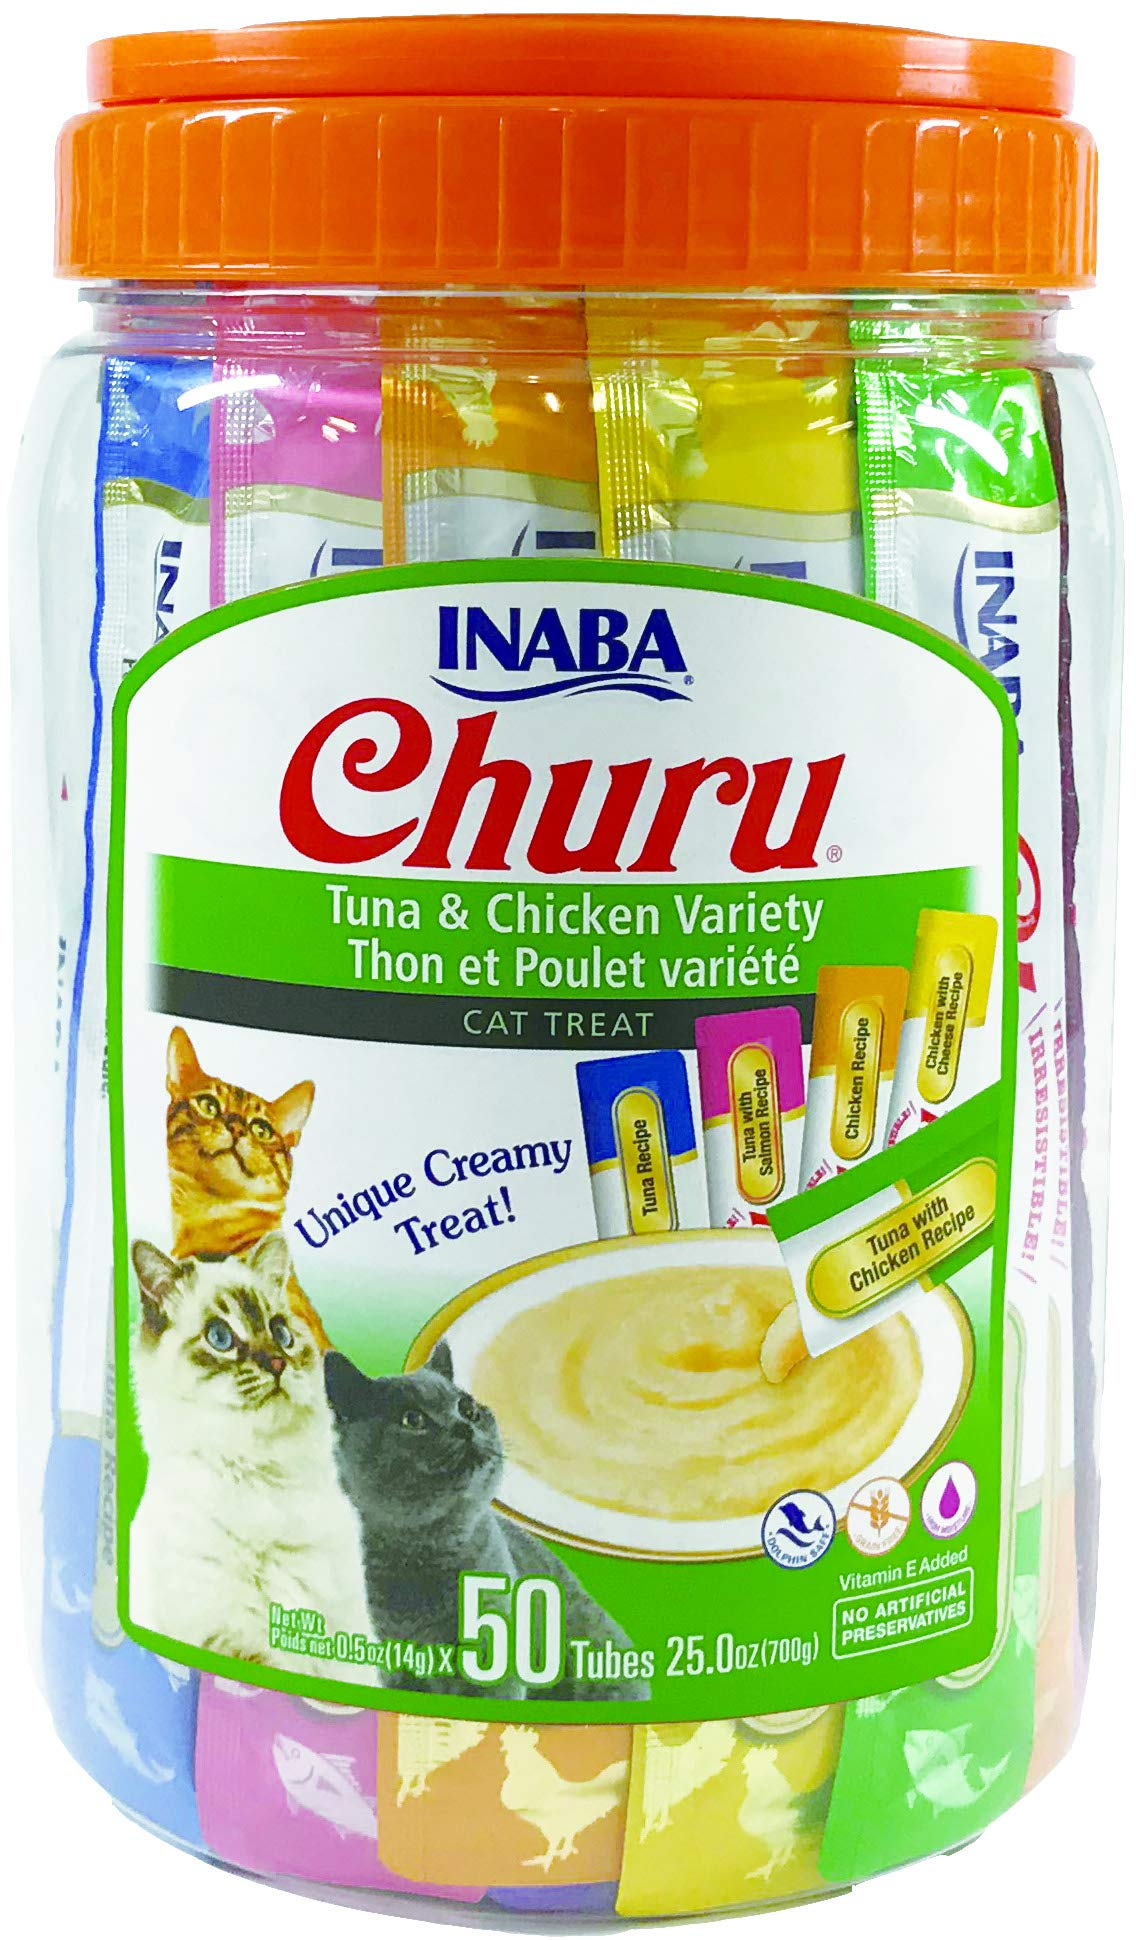 INABA Churu Tuna & Chicken Lickable Creamy Purée Cat Treats 5 Flavor Variety Pack of 50 Tubes by INABA